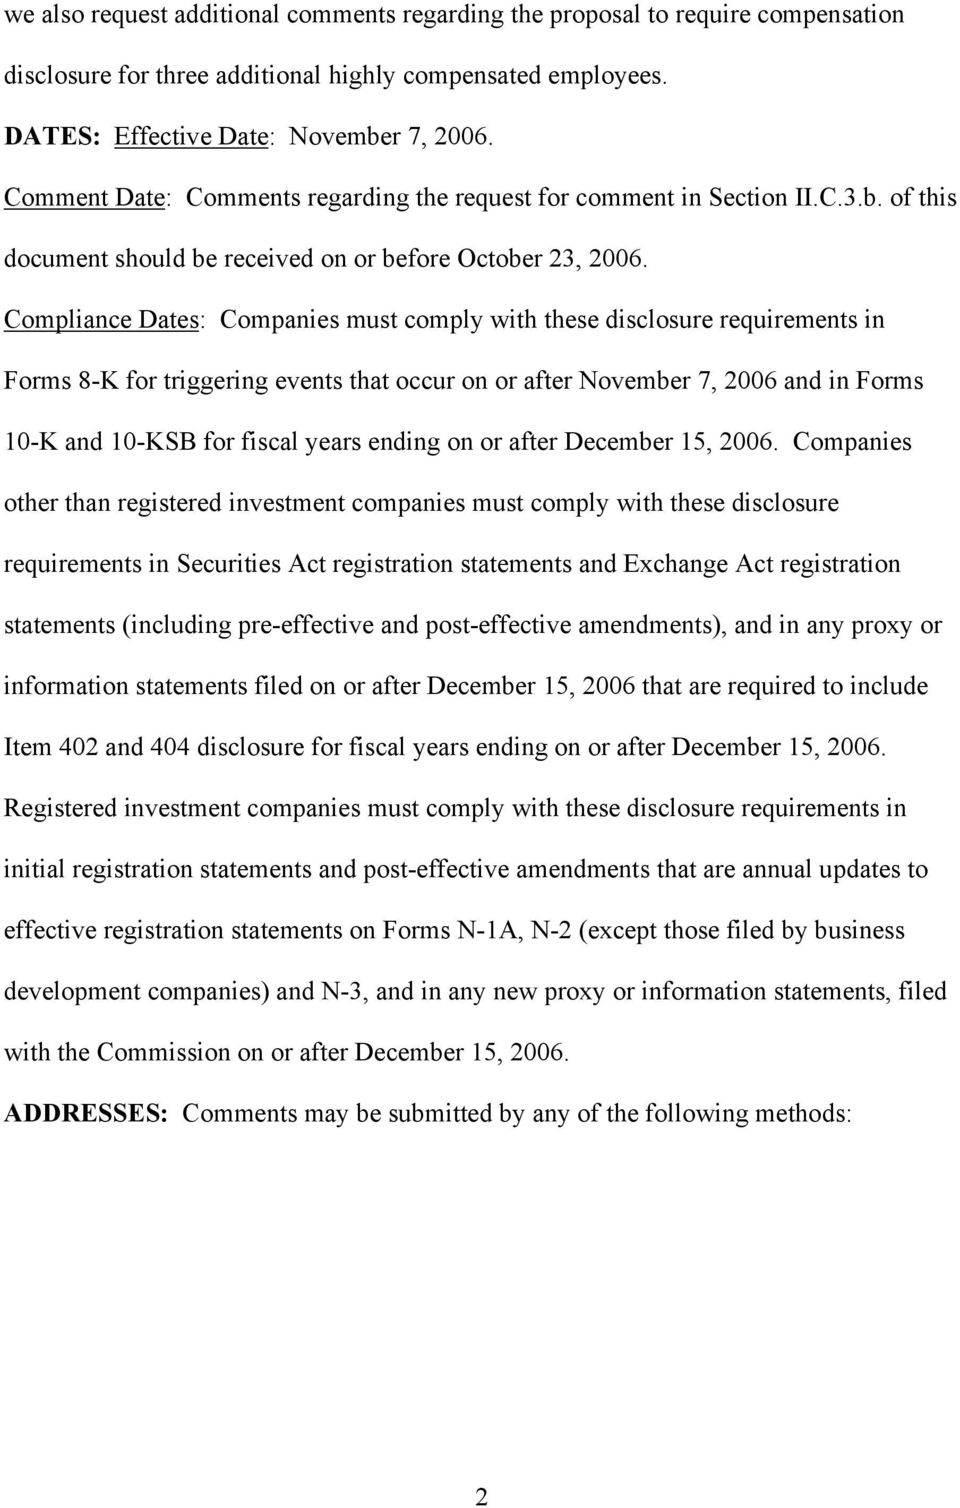 Compliance Dates: Companies must comply with these disclosure requirements in Forms 8-K for triggering events that occur on or after November 7, 2006 and in Forms 10-K and 10-KSB for fiscal years